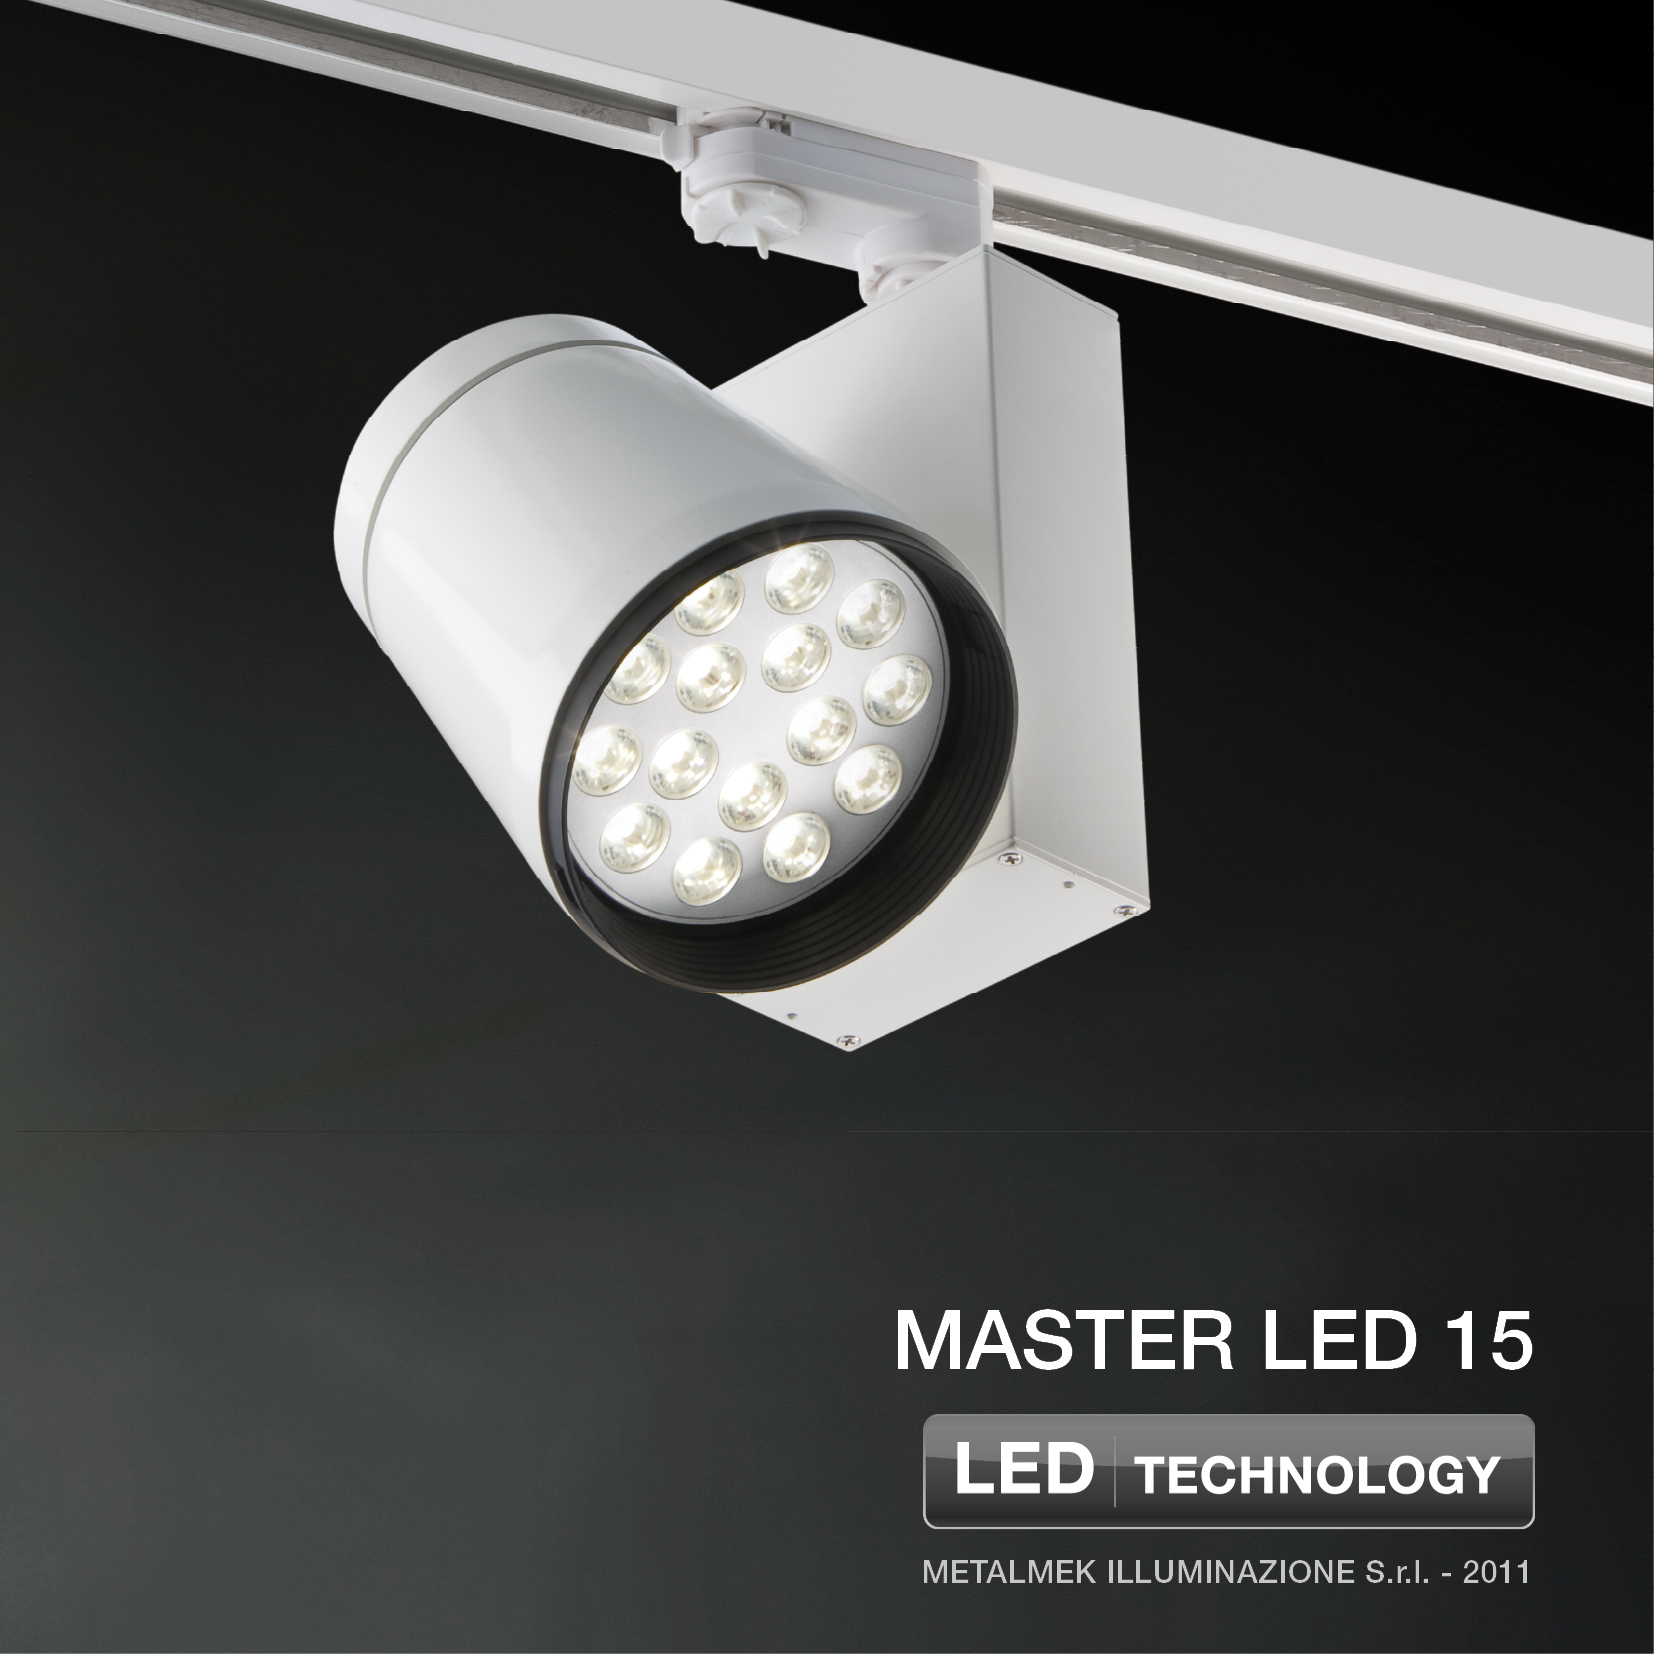 Proiettore a led a testa mobile master led 15 by metalmek for Illuminazione a led